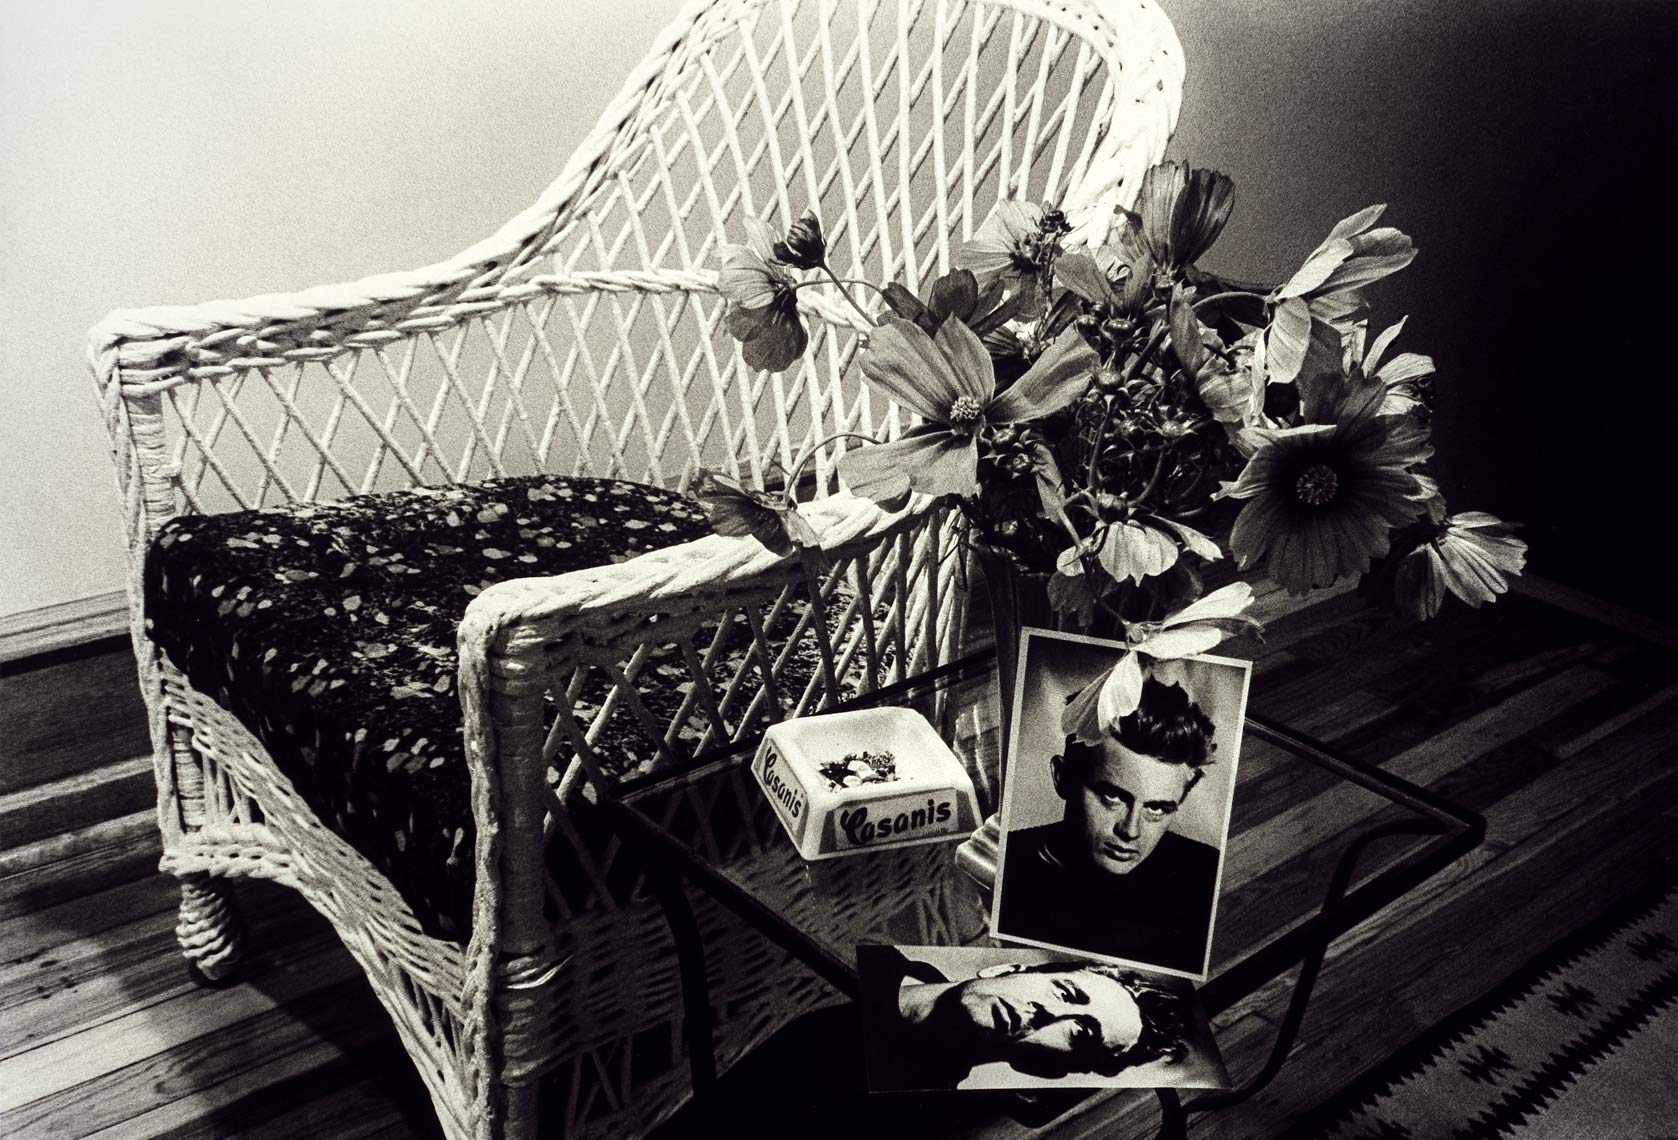 David Lebe; Wicker Chair, 1882, black and white photograph